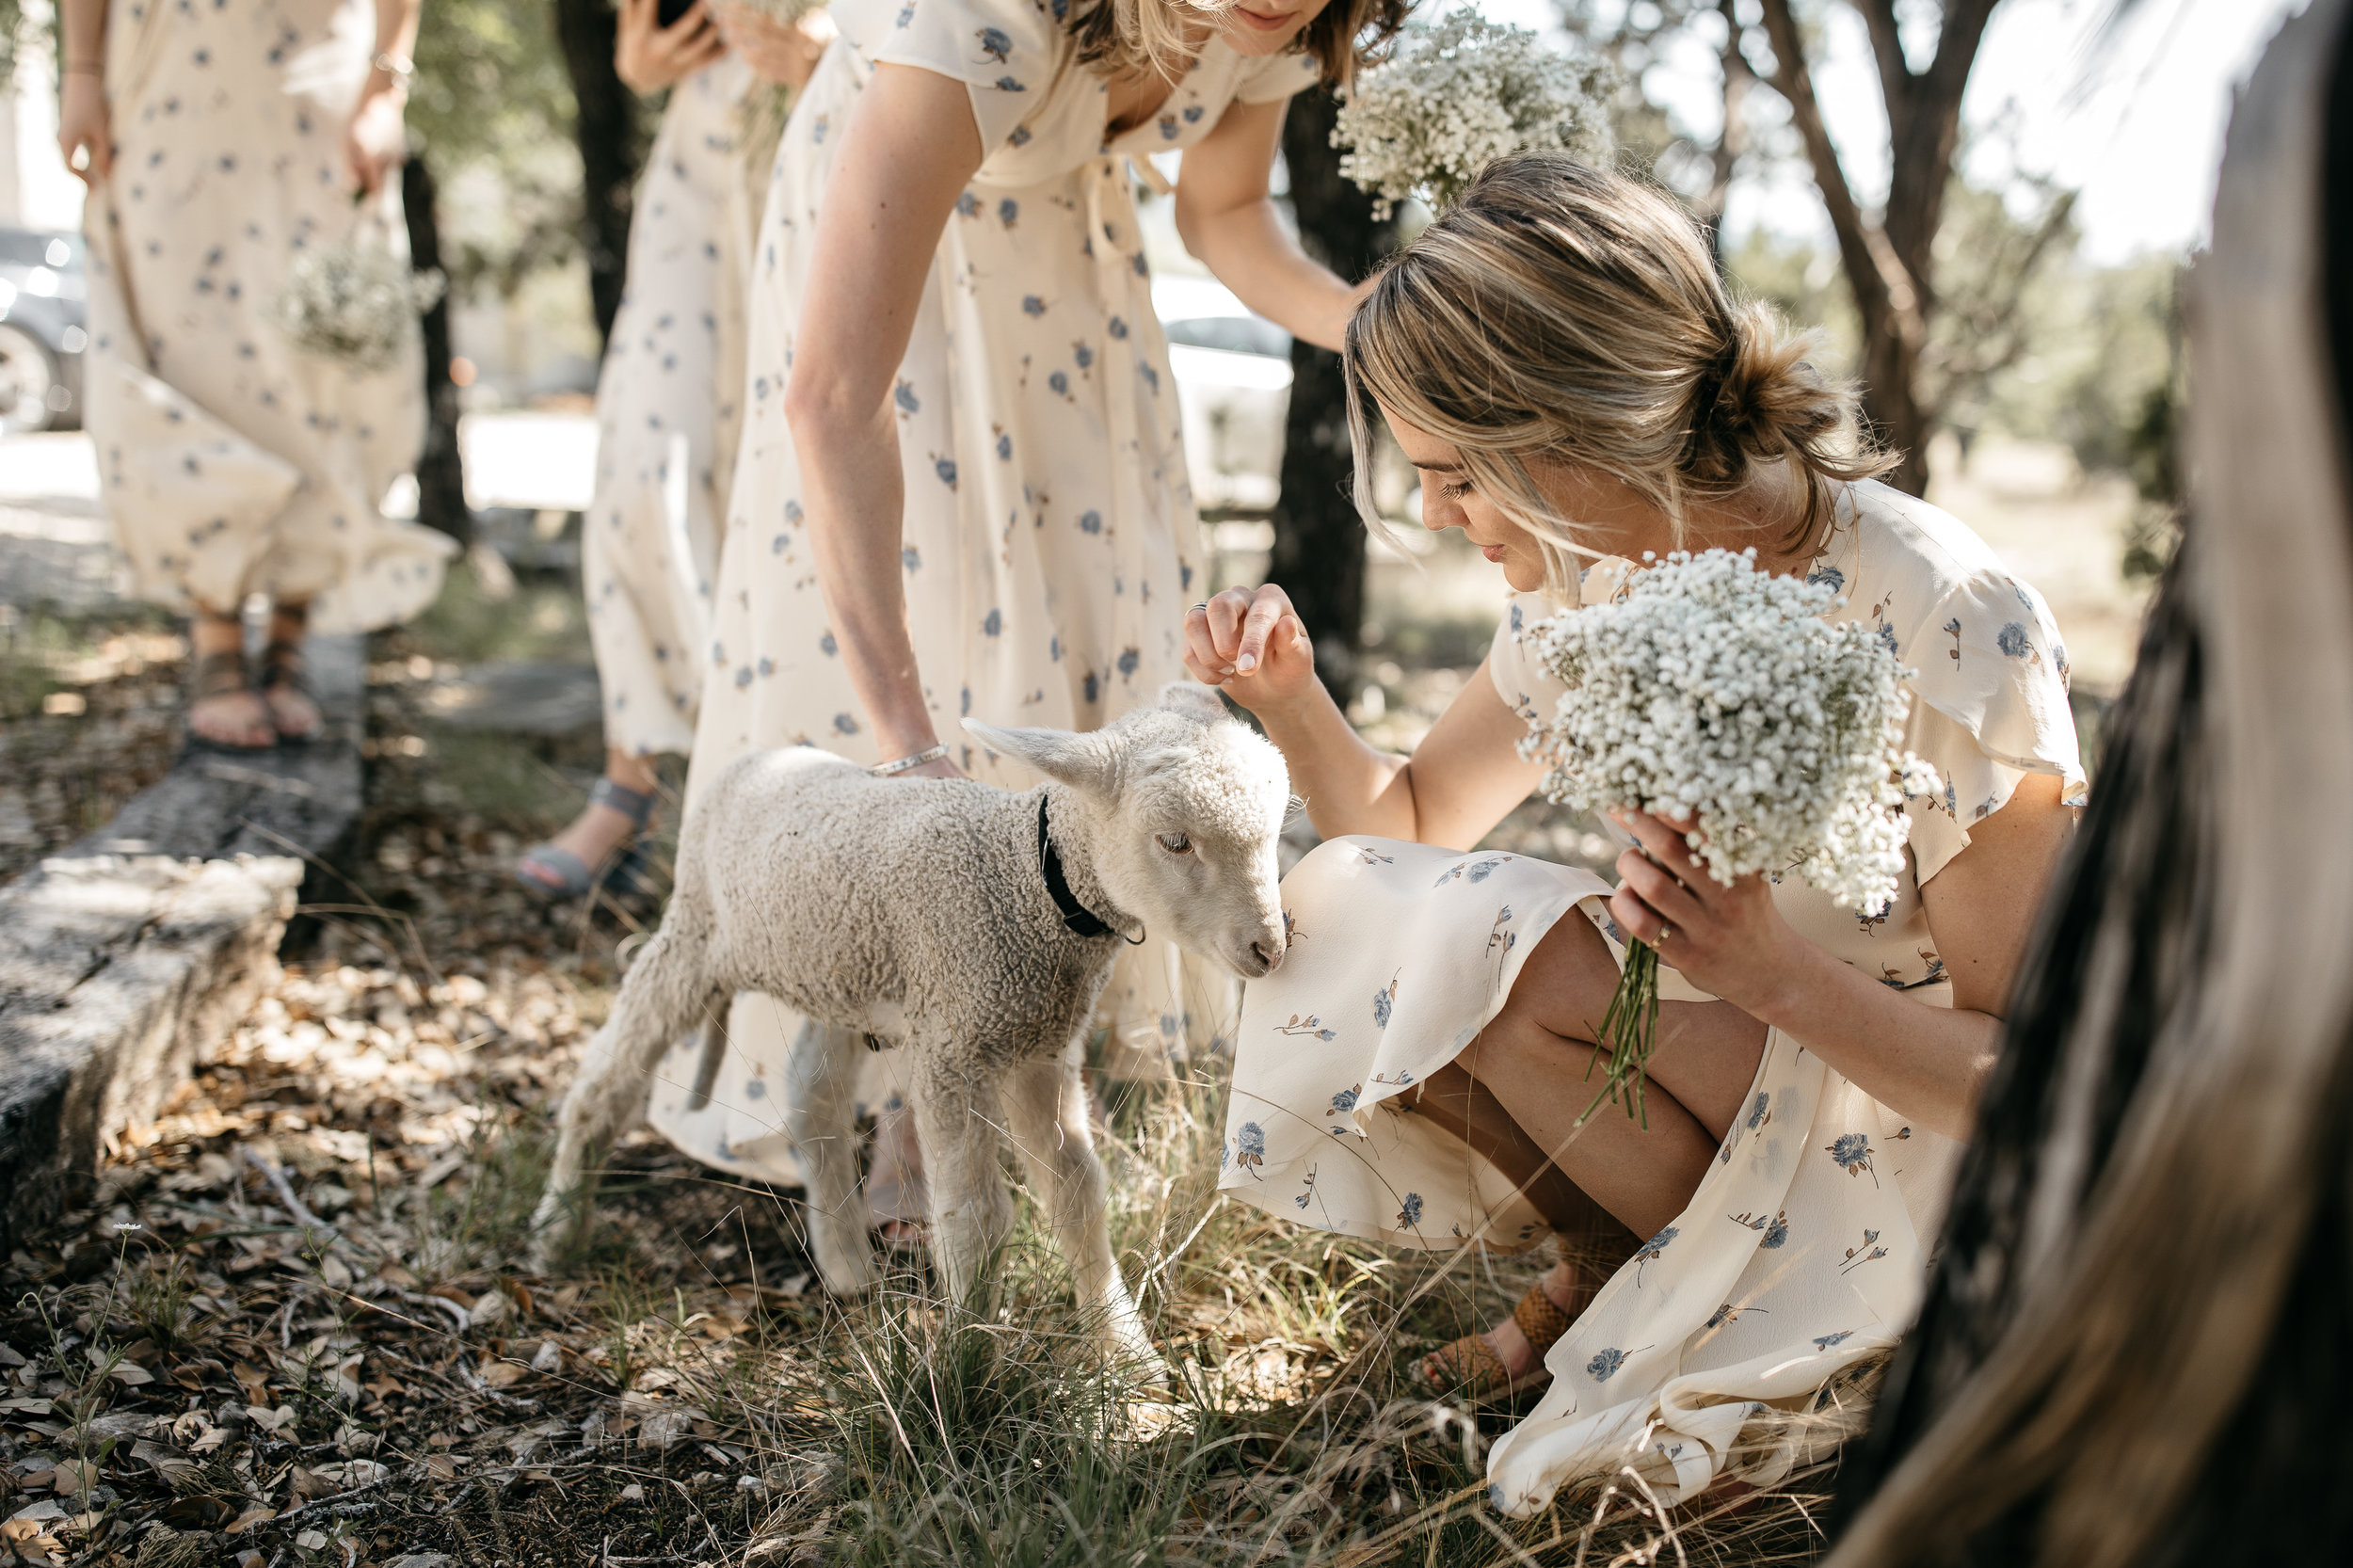 Kate_Luke_Texas_Wedding_JeanLaurentGaudy_218.jpg